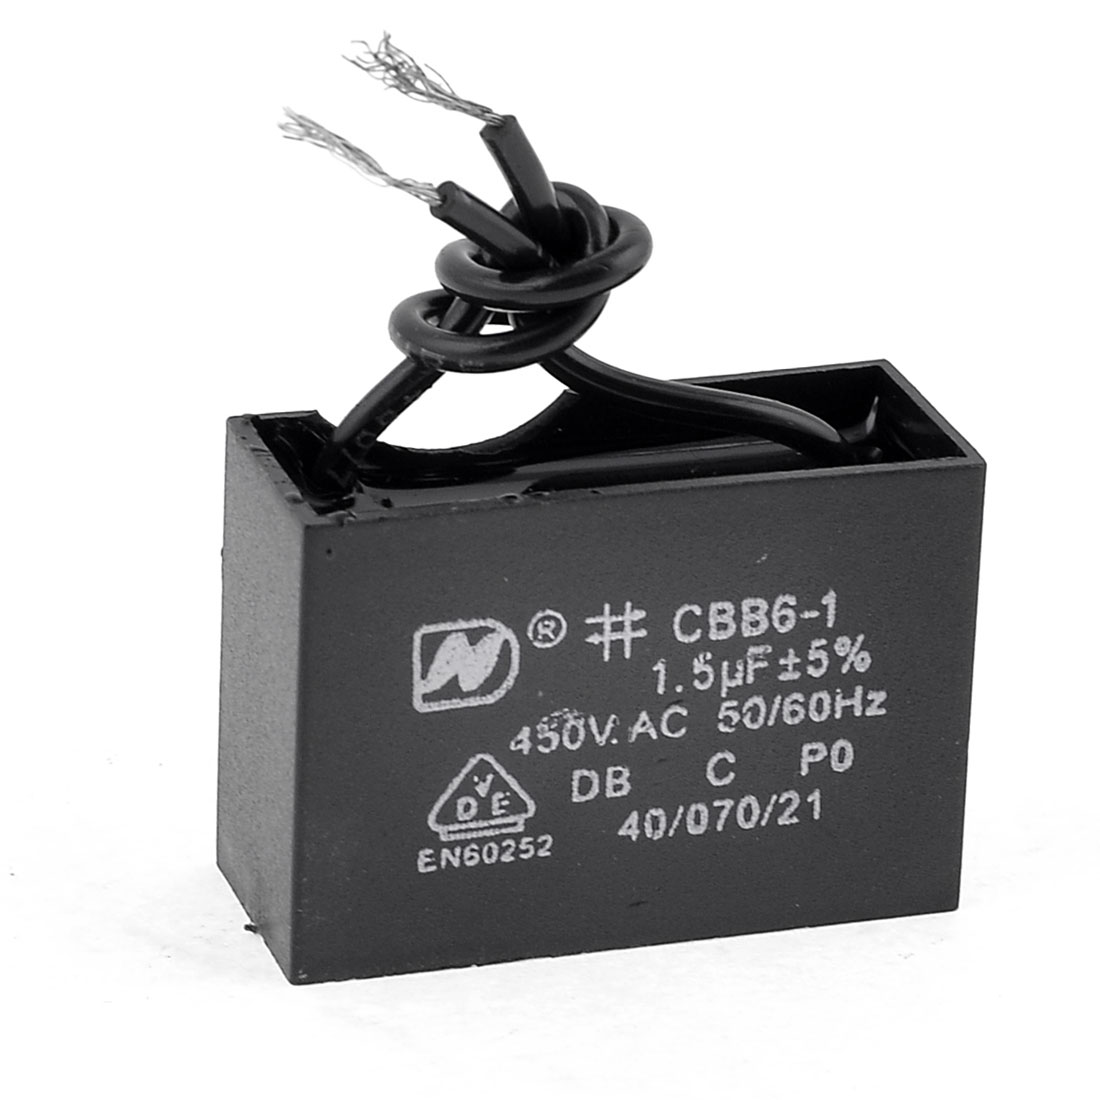 CBB61 AC 450V 1.5uF 5% Rectangle Motor Run Capacitor Black